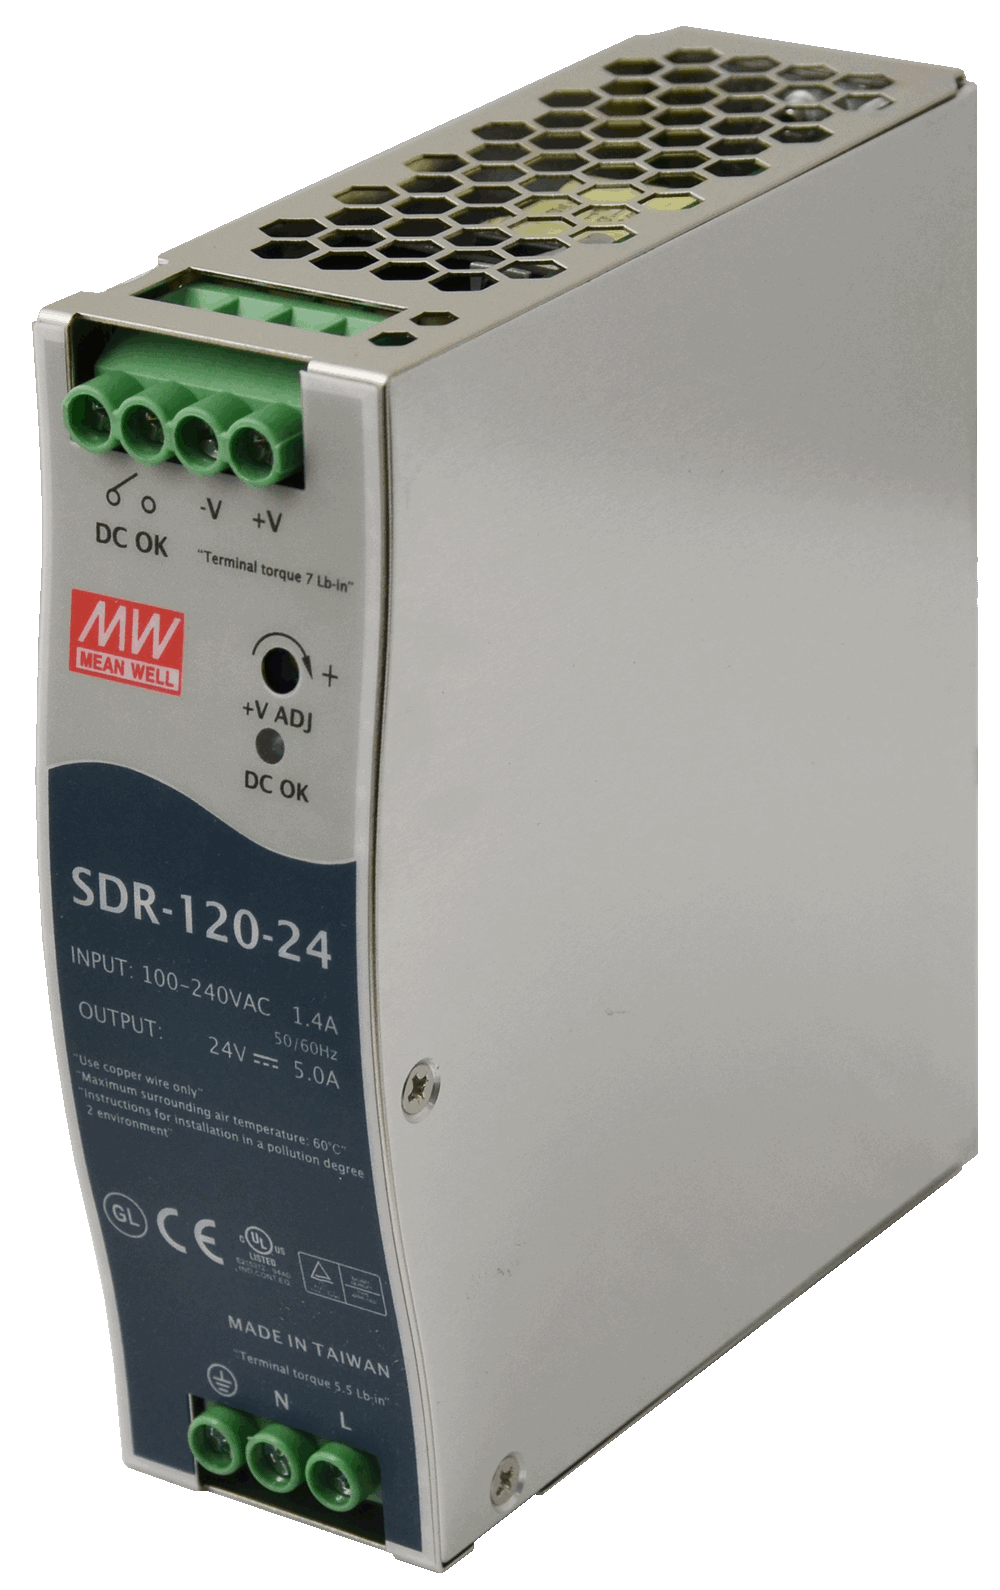 Mean Well MEAN WELL SDR-120 Slim, High Reliability 120W Din Rail PSU - BNR Industrial